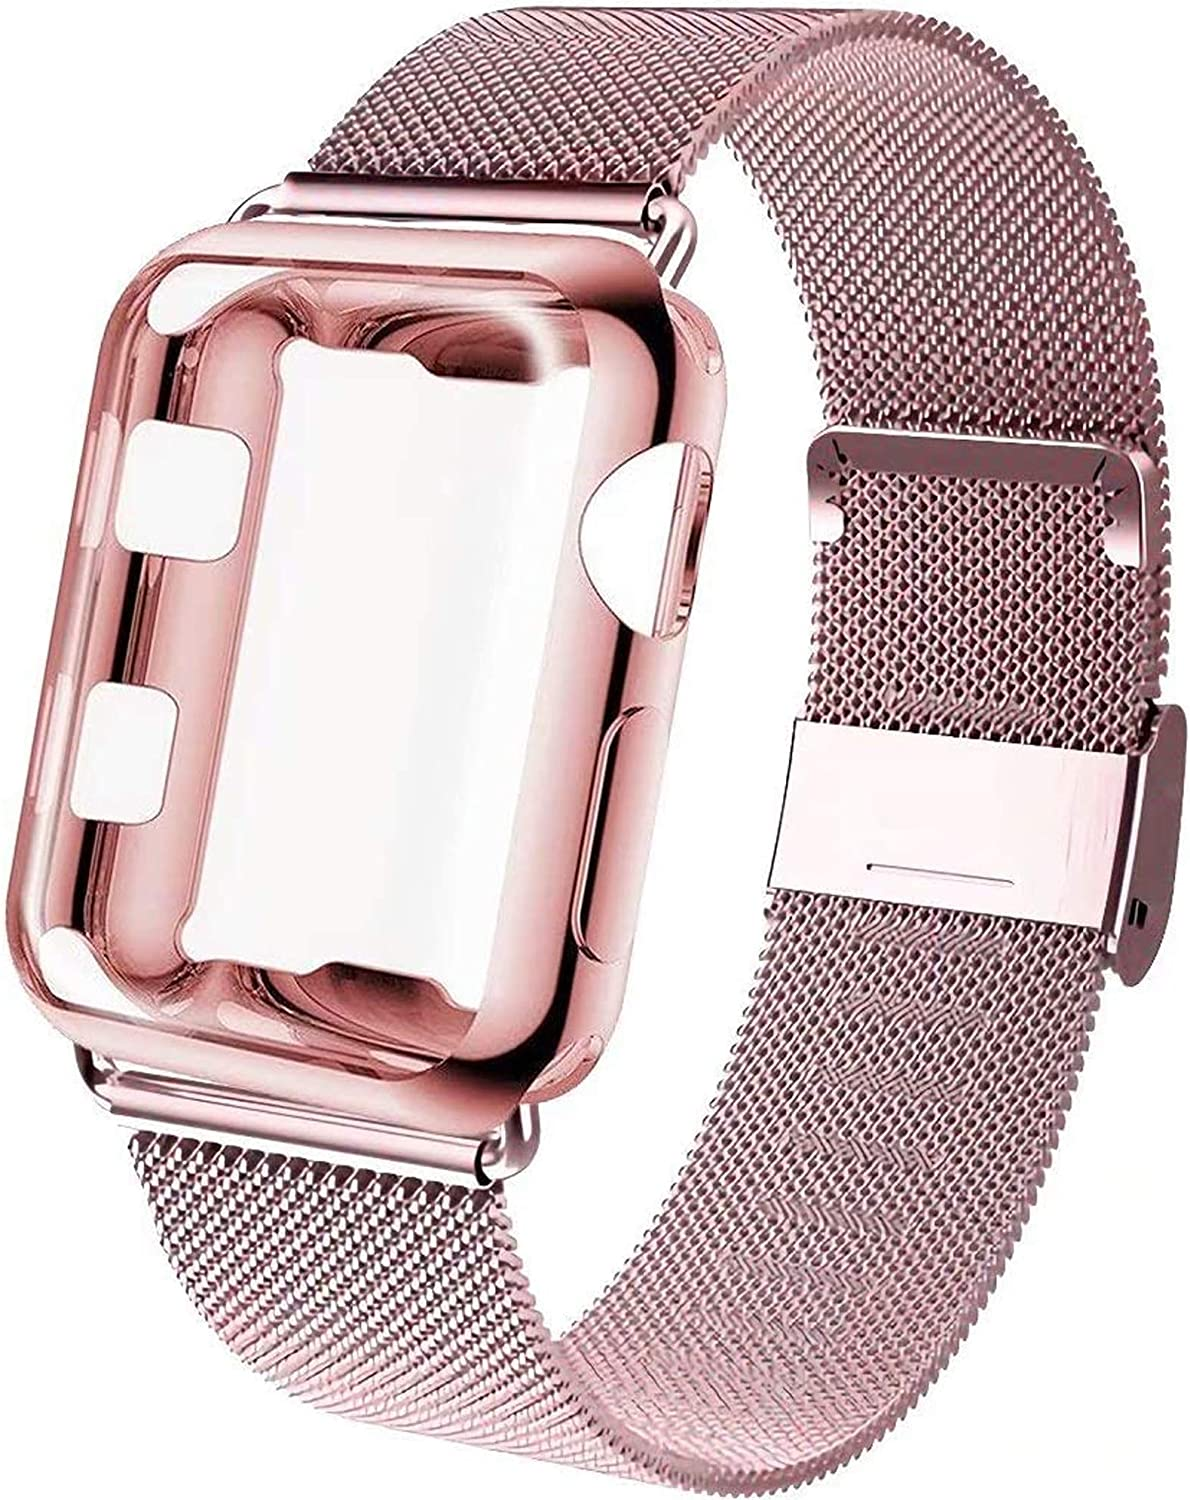 GBPOOT Compatible for Apple Watch Band 38mm 40mm 42mm 44mm with Screen Protector Case, Sports Wristband Strap Replacement Band with Protective Case for Iwatch Series 6/SE/5/4/3/2/11,42mm,Rose Gold